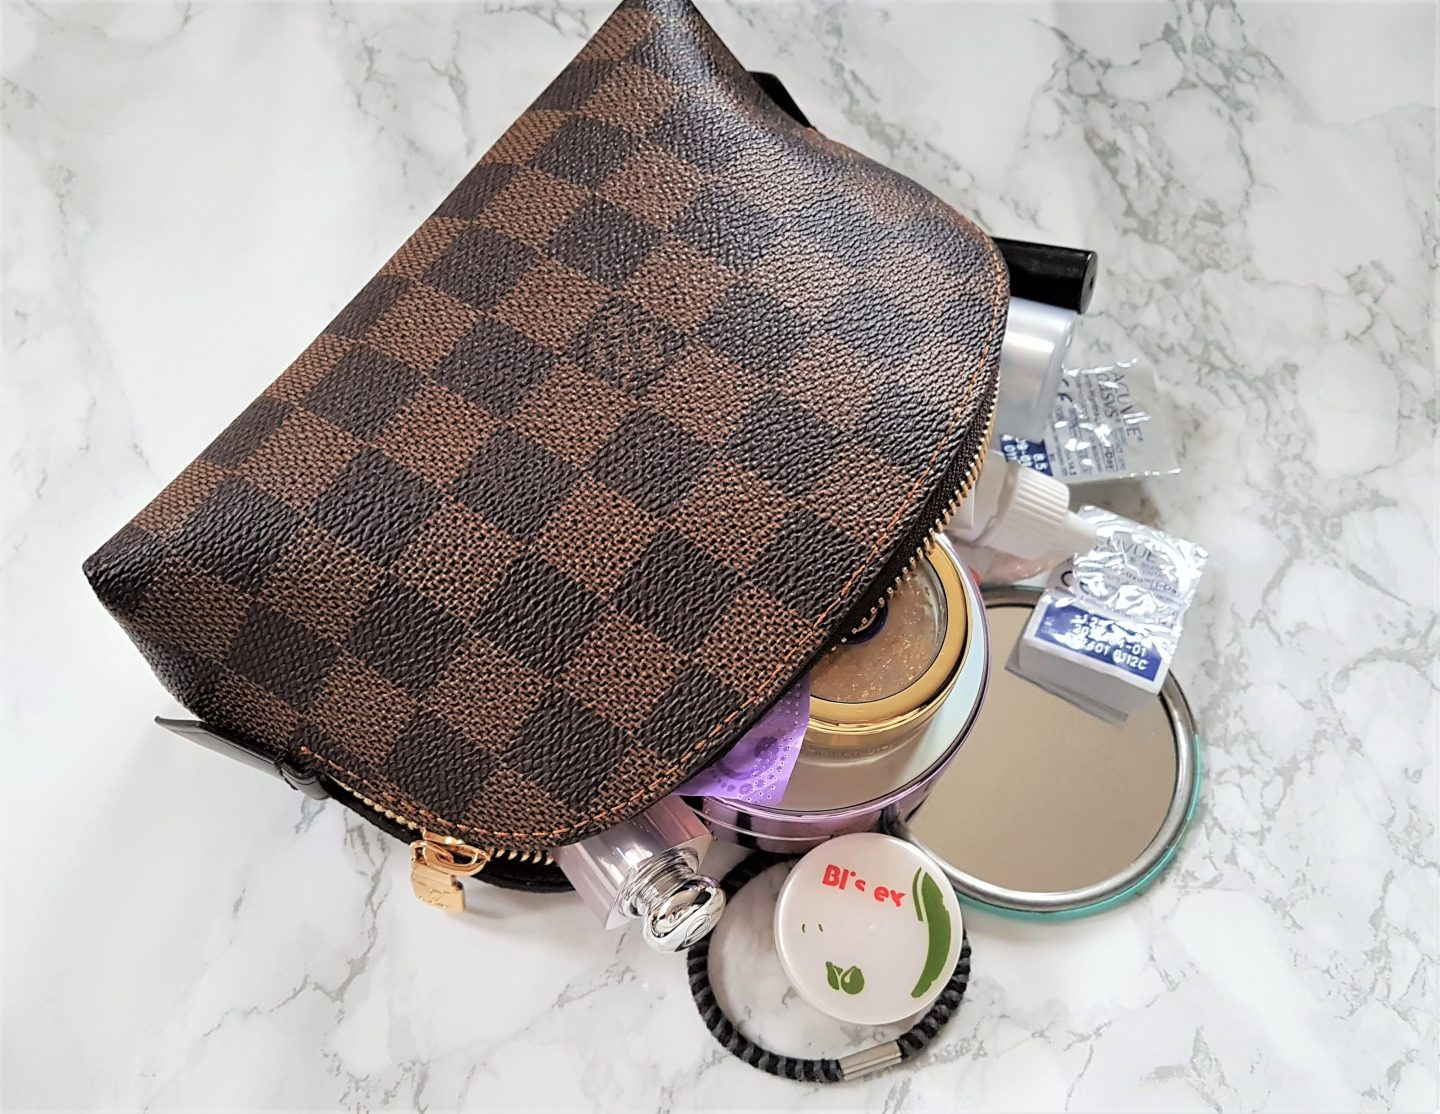 LV cosmetic pouch review + What's in my makeup bag 2018?